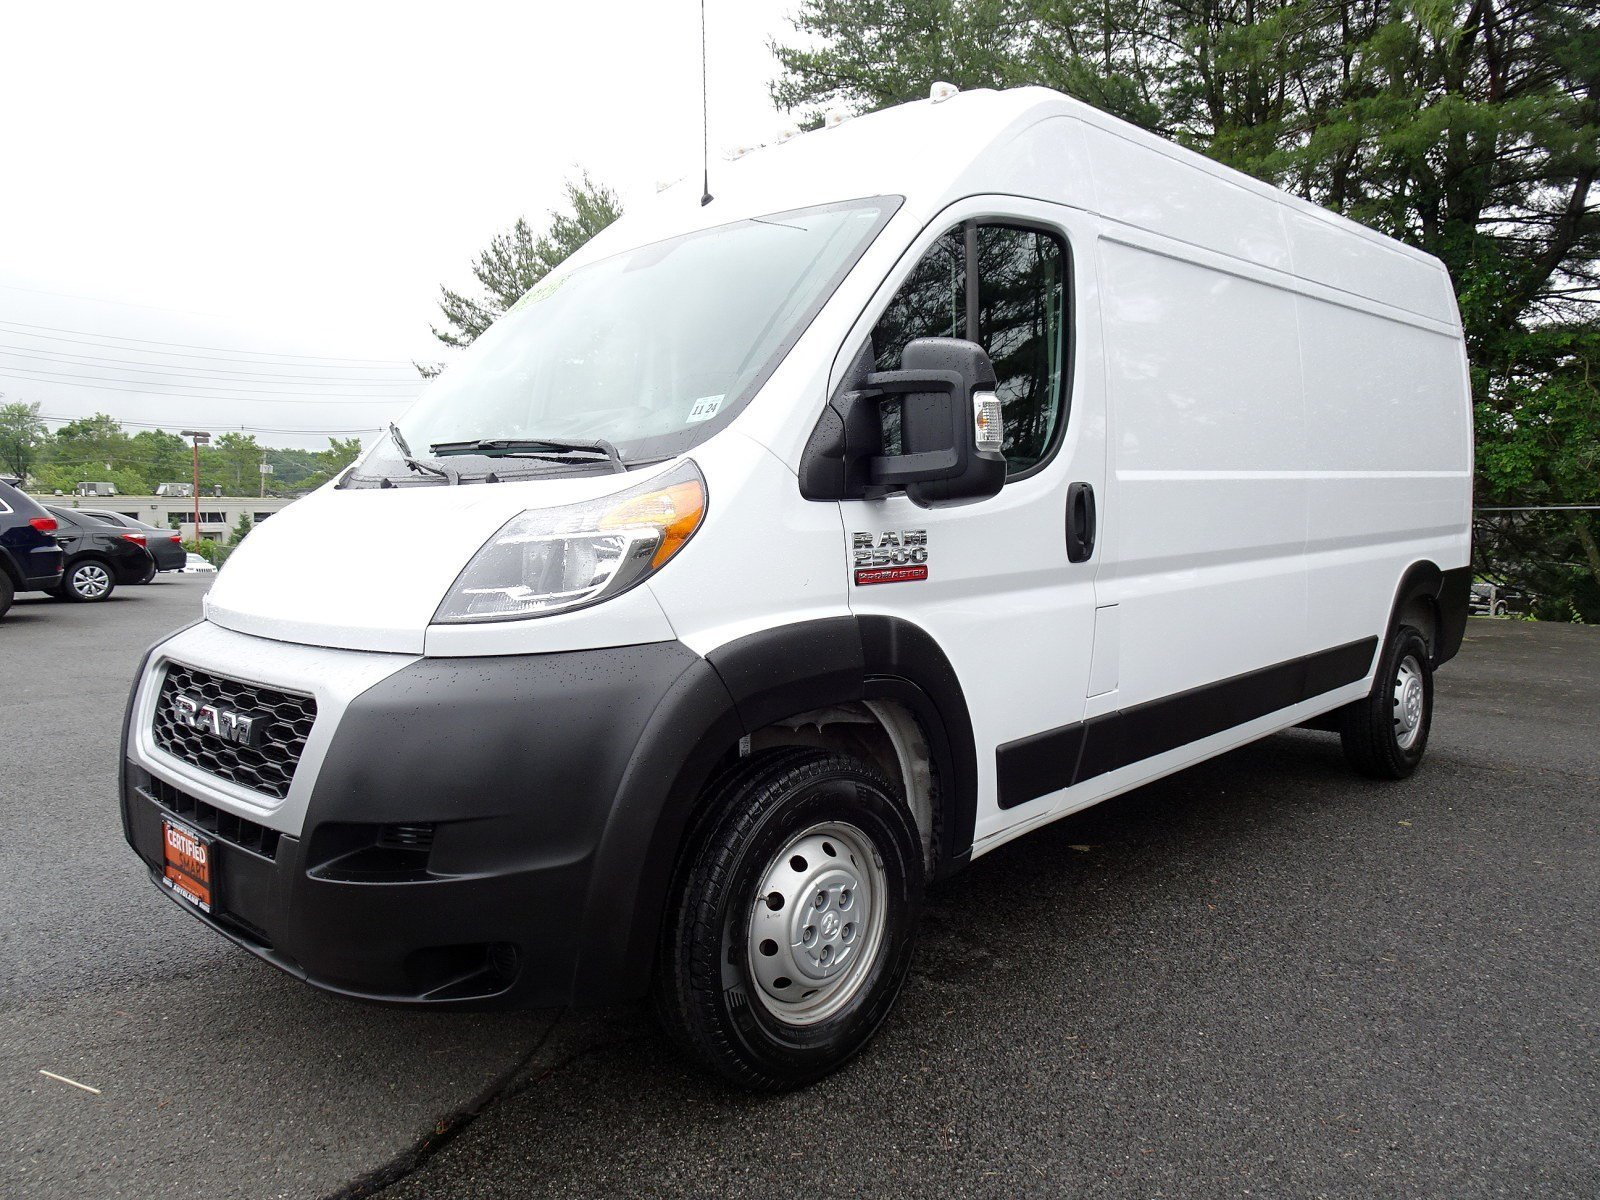 Used 2019 Ram Promaster Cargo Van For Sale at Autoland